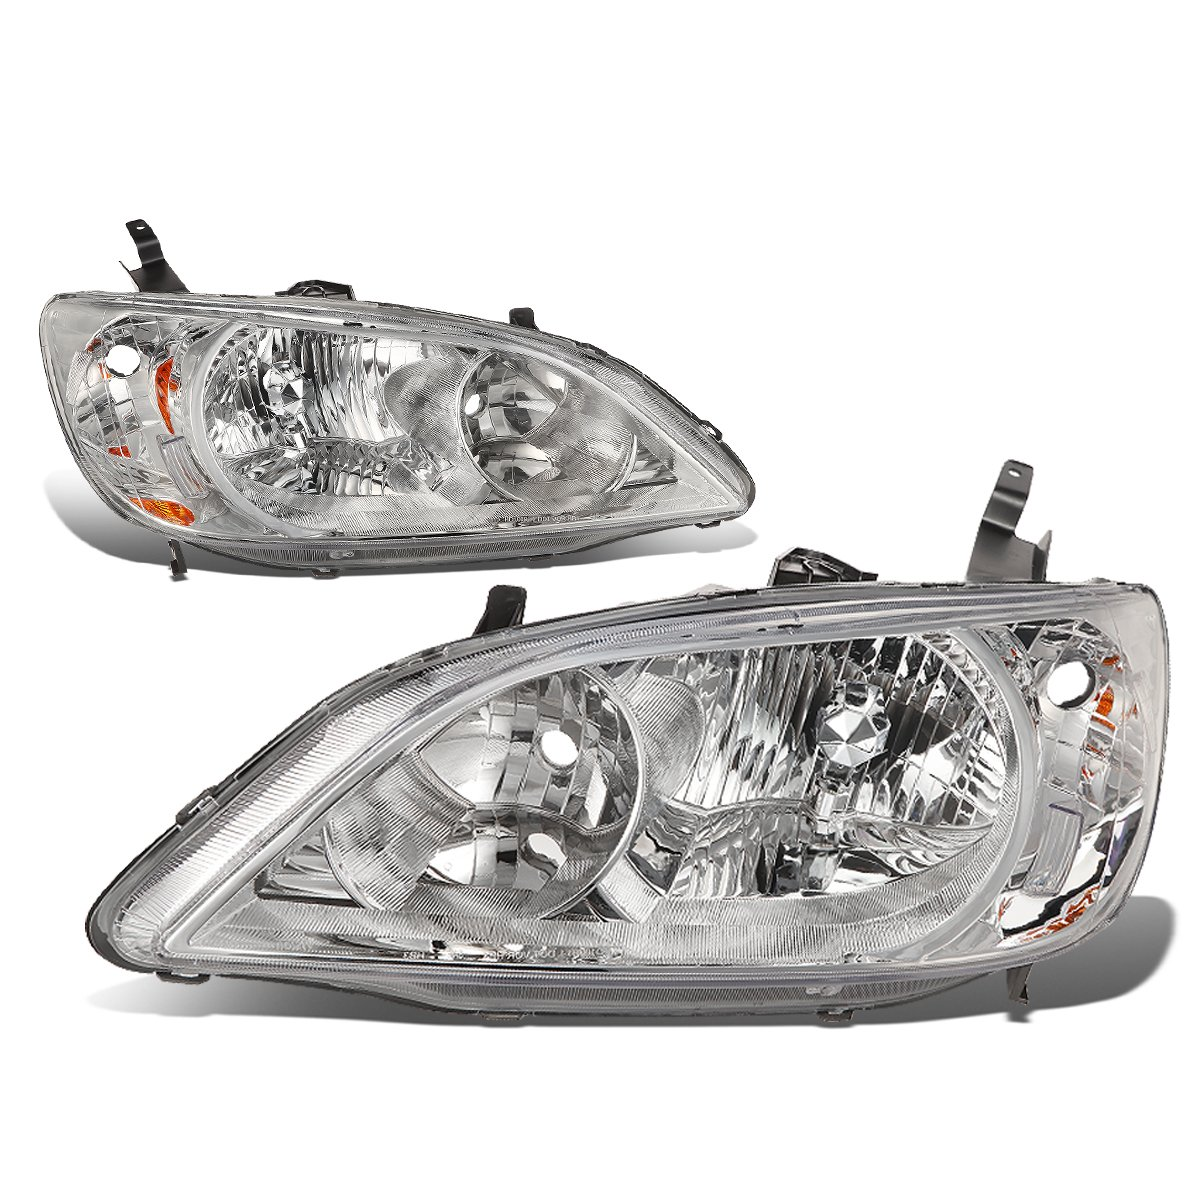 DNA MOTORING HL-OH-038-CH-AM Headlight Assembly Driver And Passenger Side